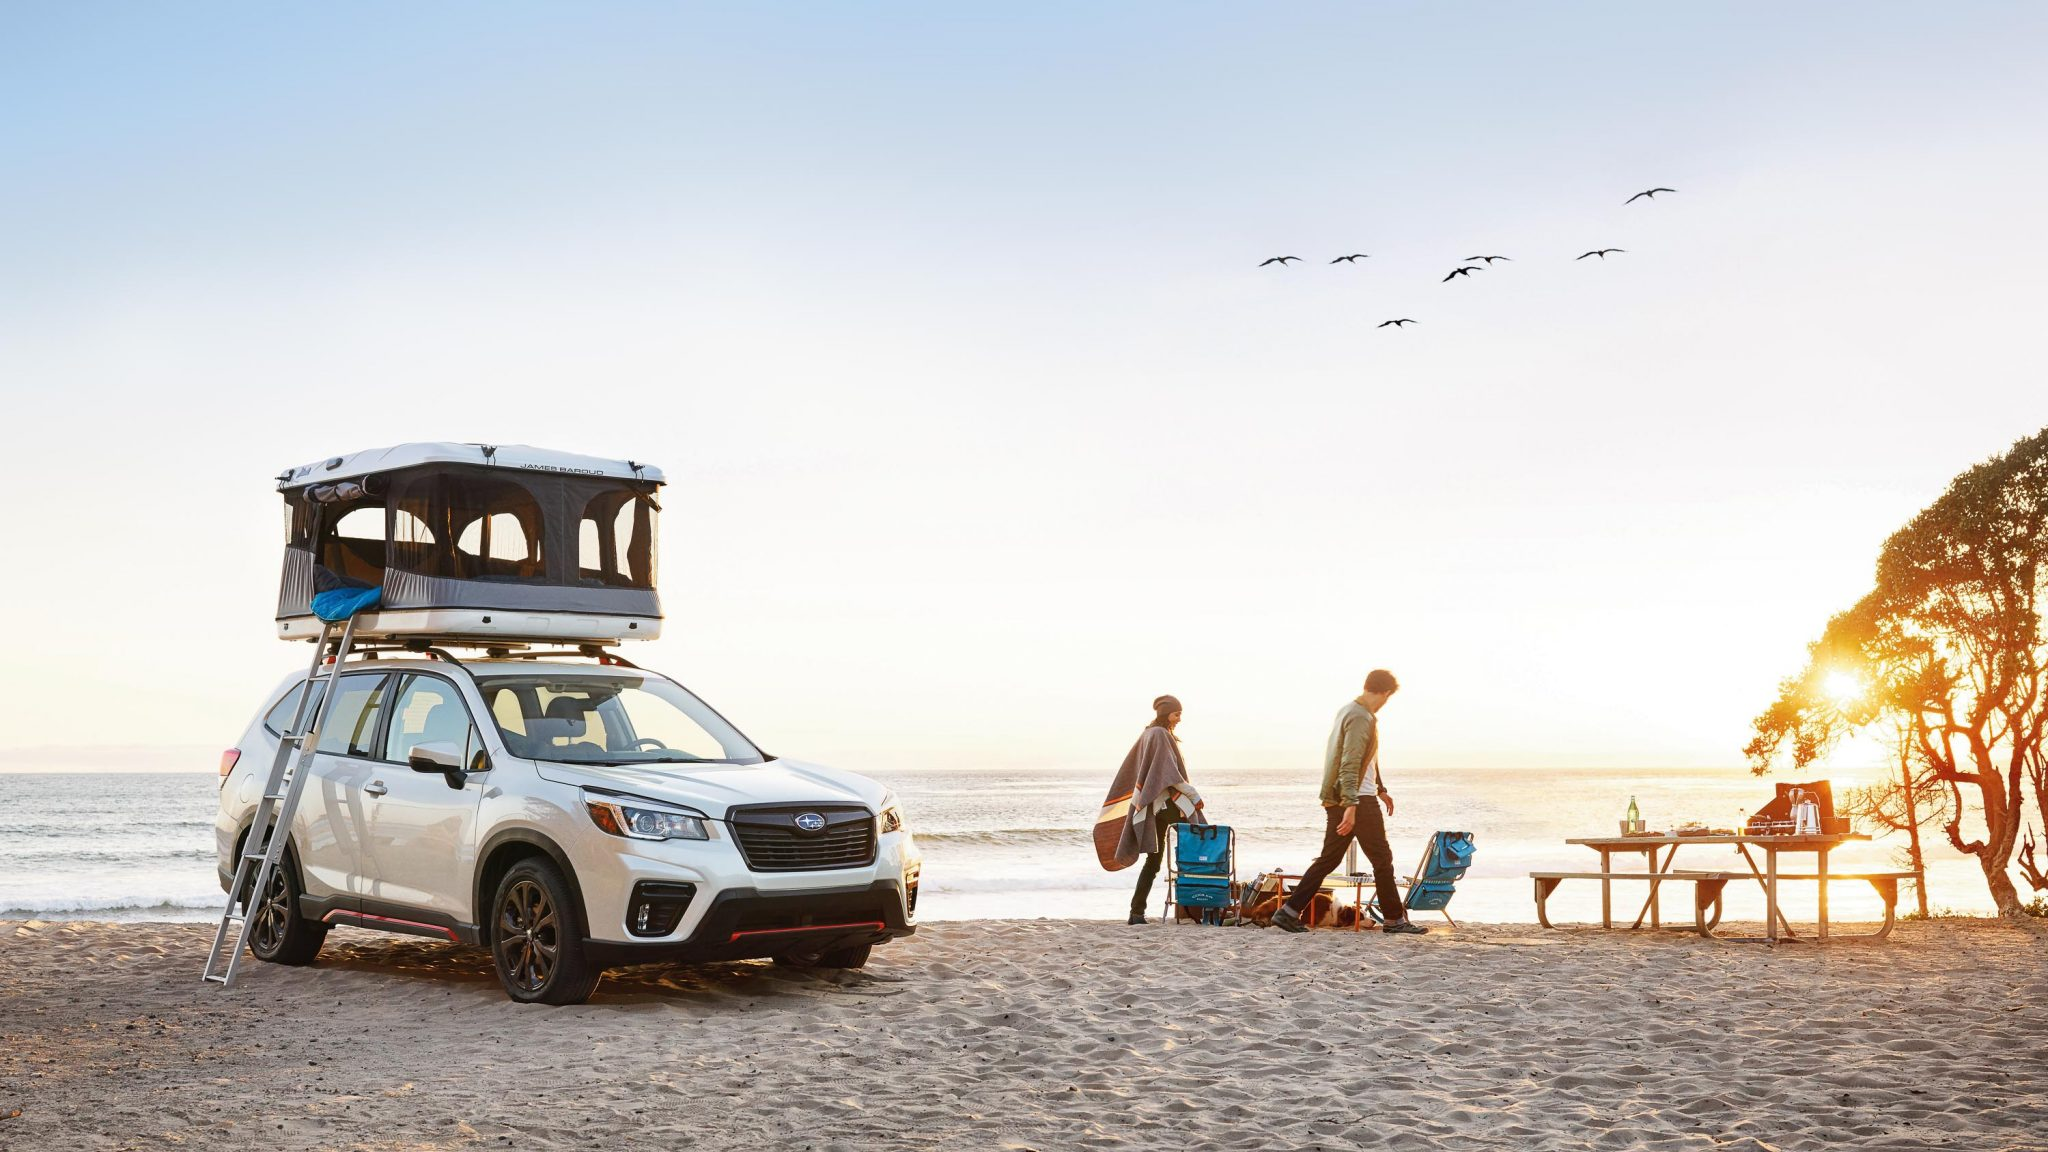 Client: Subaru Photographer: Jeff Stockwell  Agency: The Designory